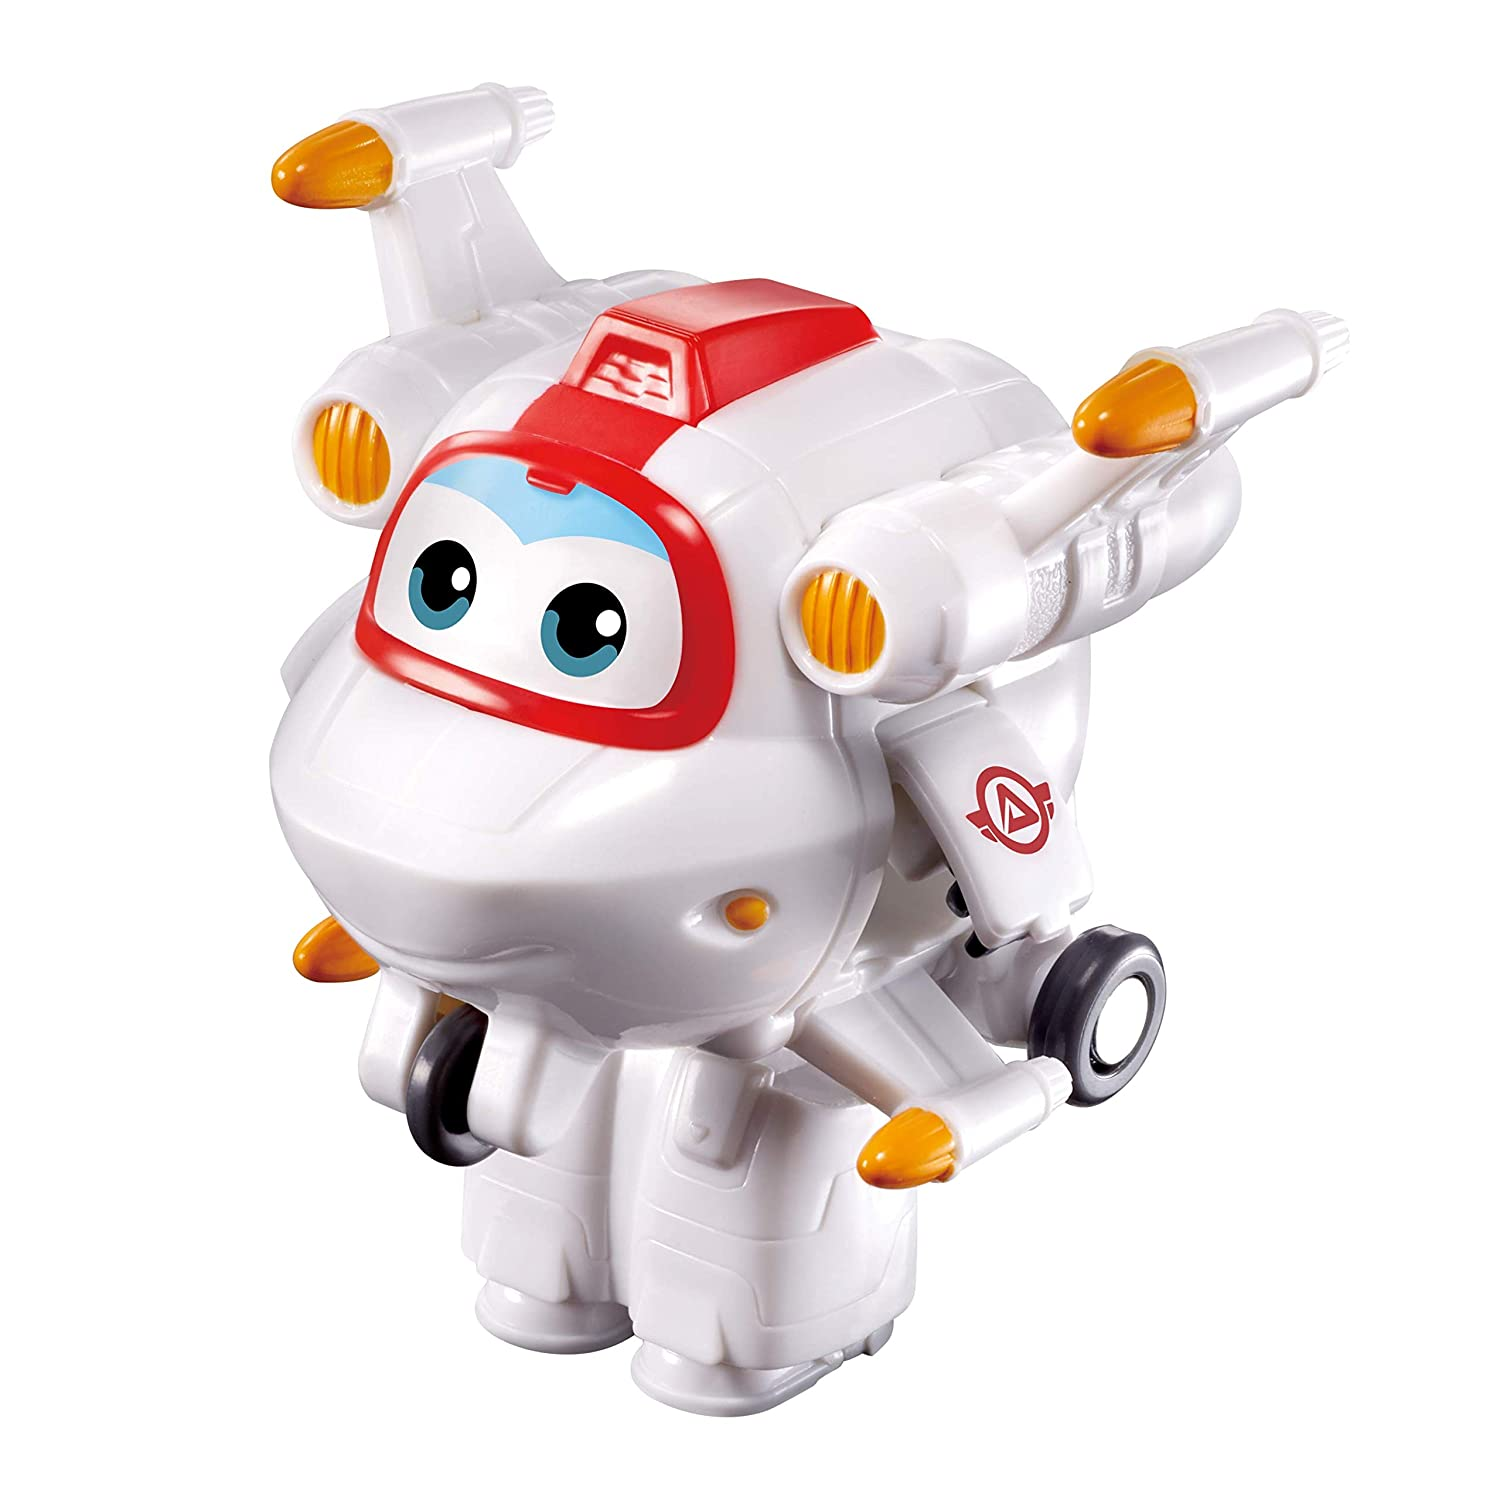 Super Wings Us720040g Transforming Toy Figures Rescue Dizzy Zoey Astra Astro 2 Scale